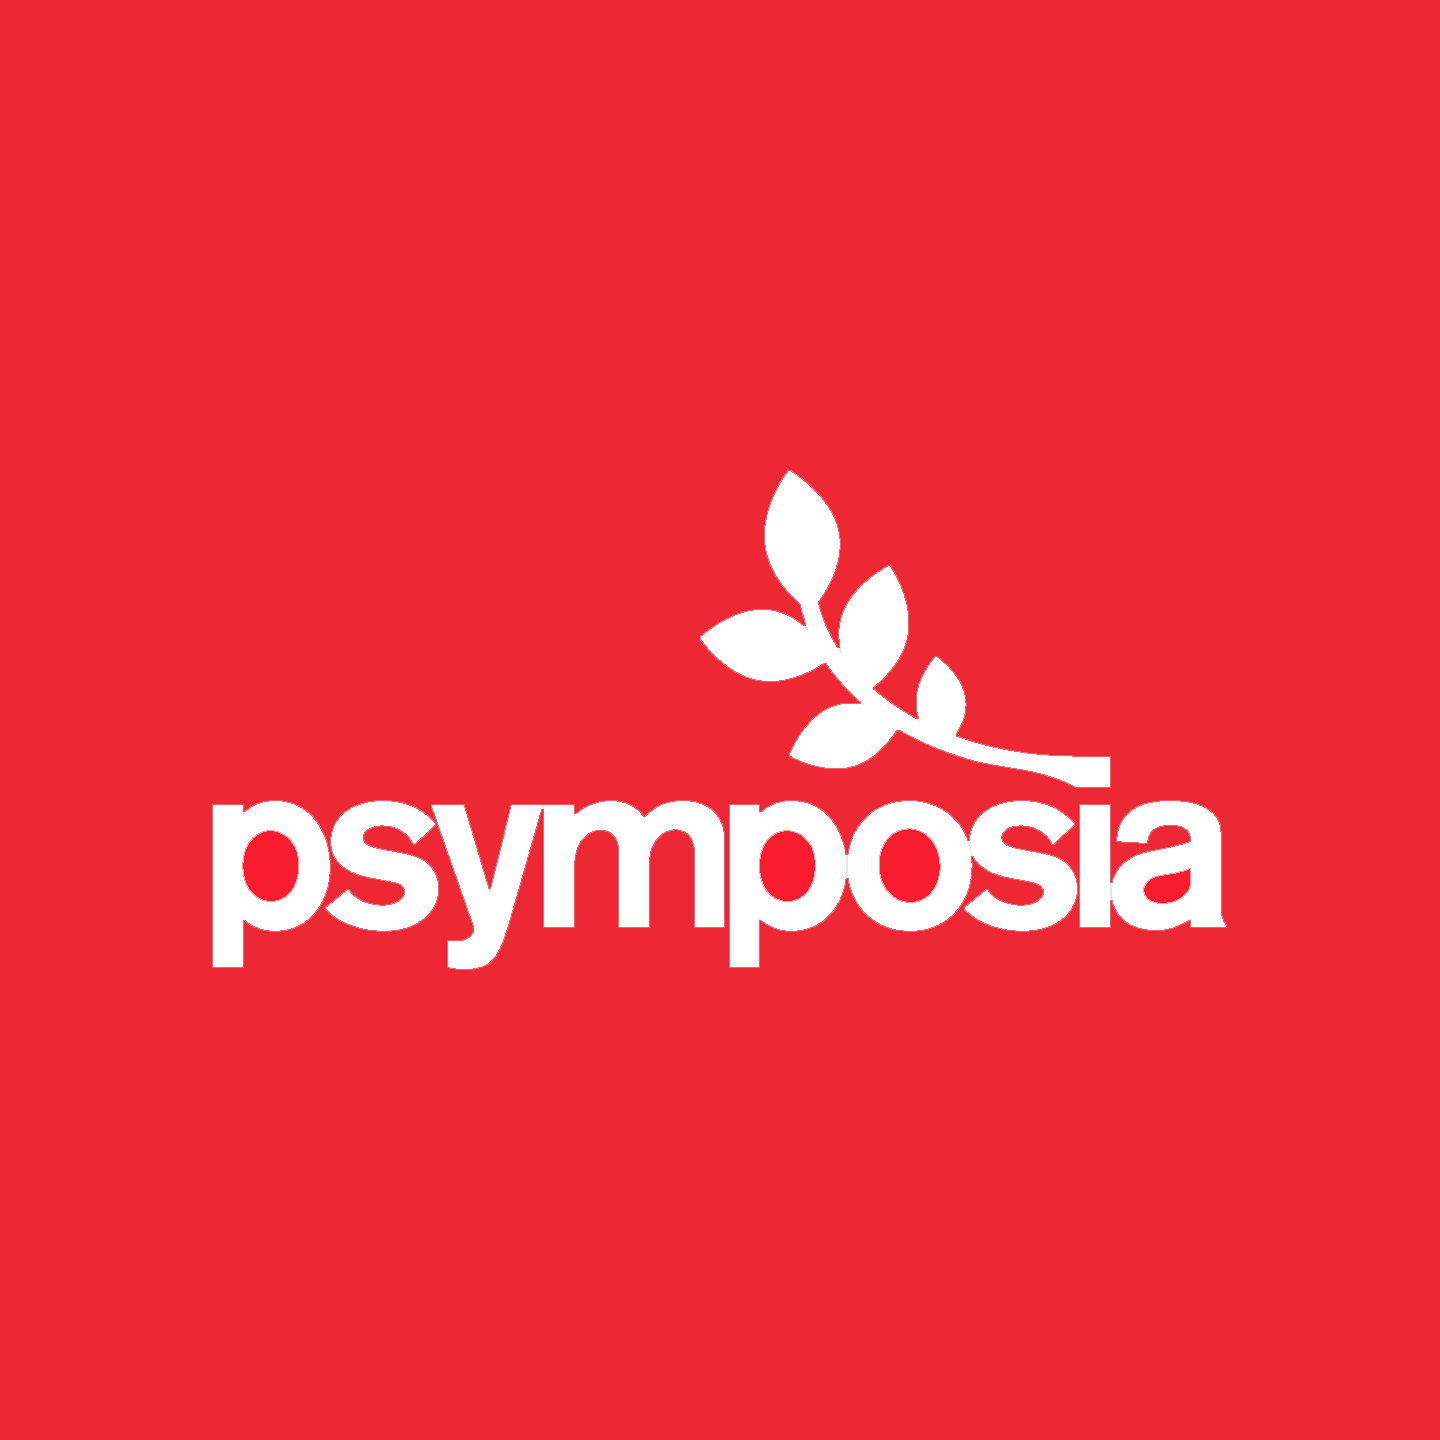 Psymposia 2015: Envisioning a Post Prohibition World Logo